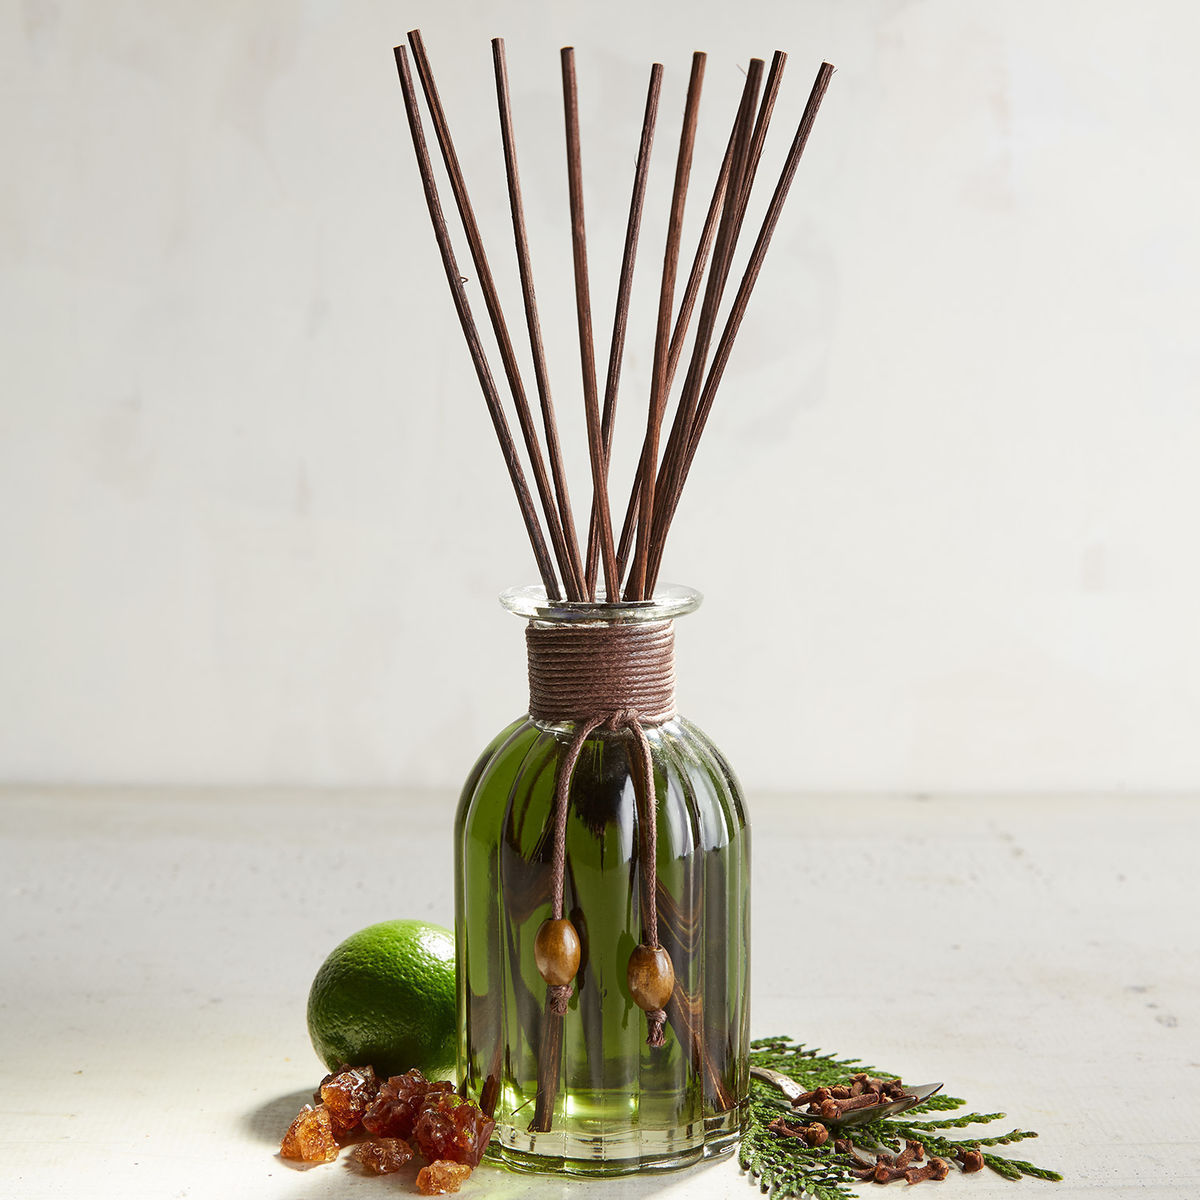 pier 1 reed diffuser instructions